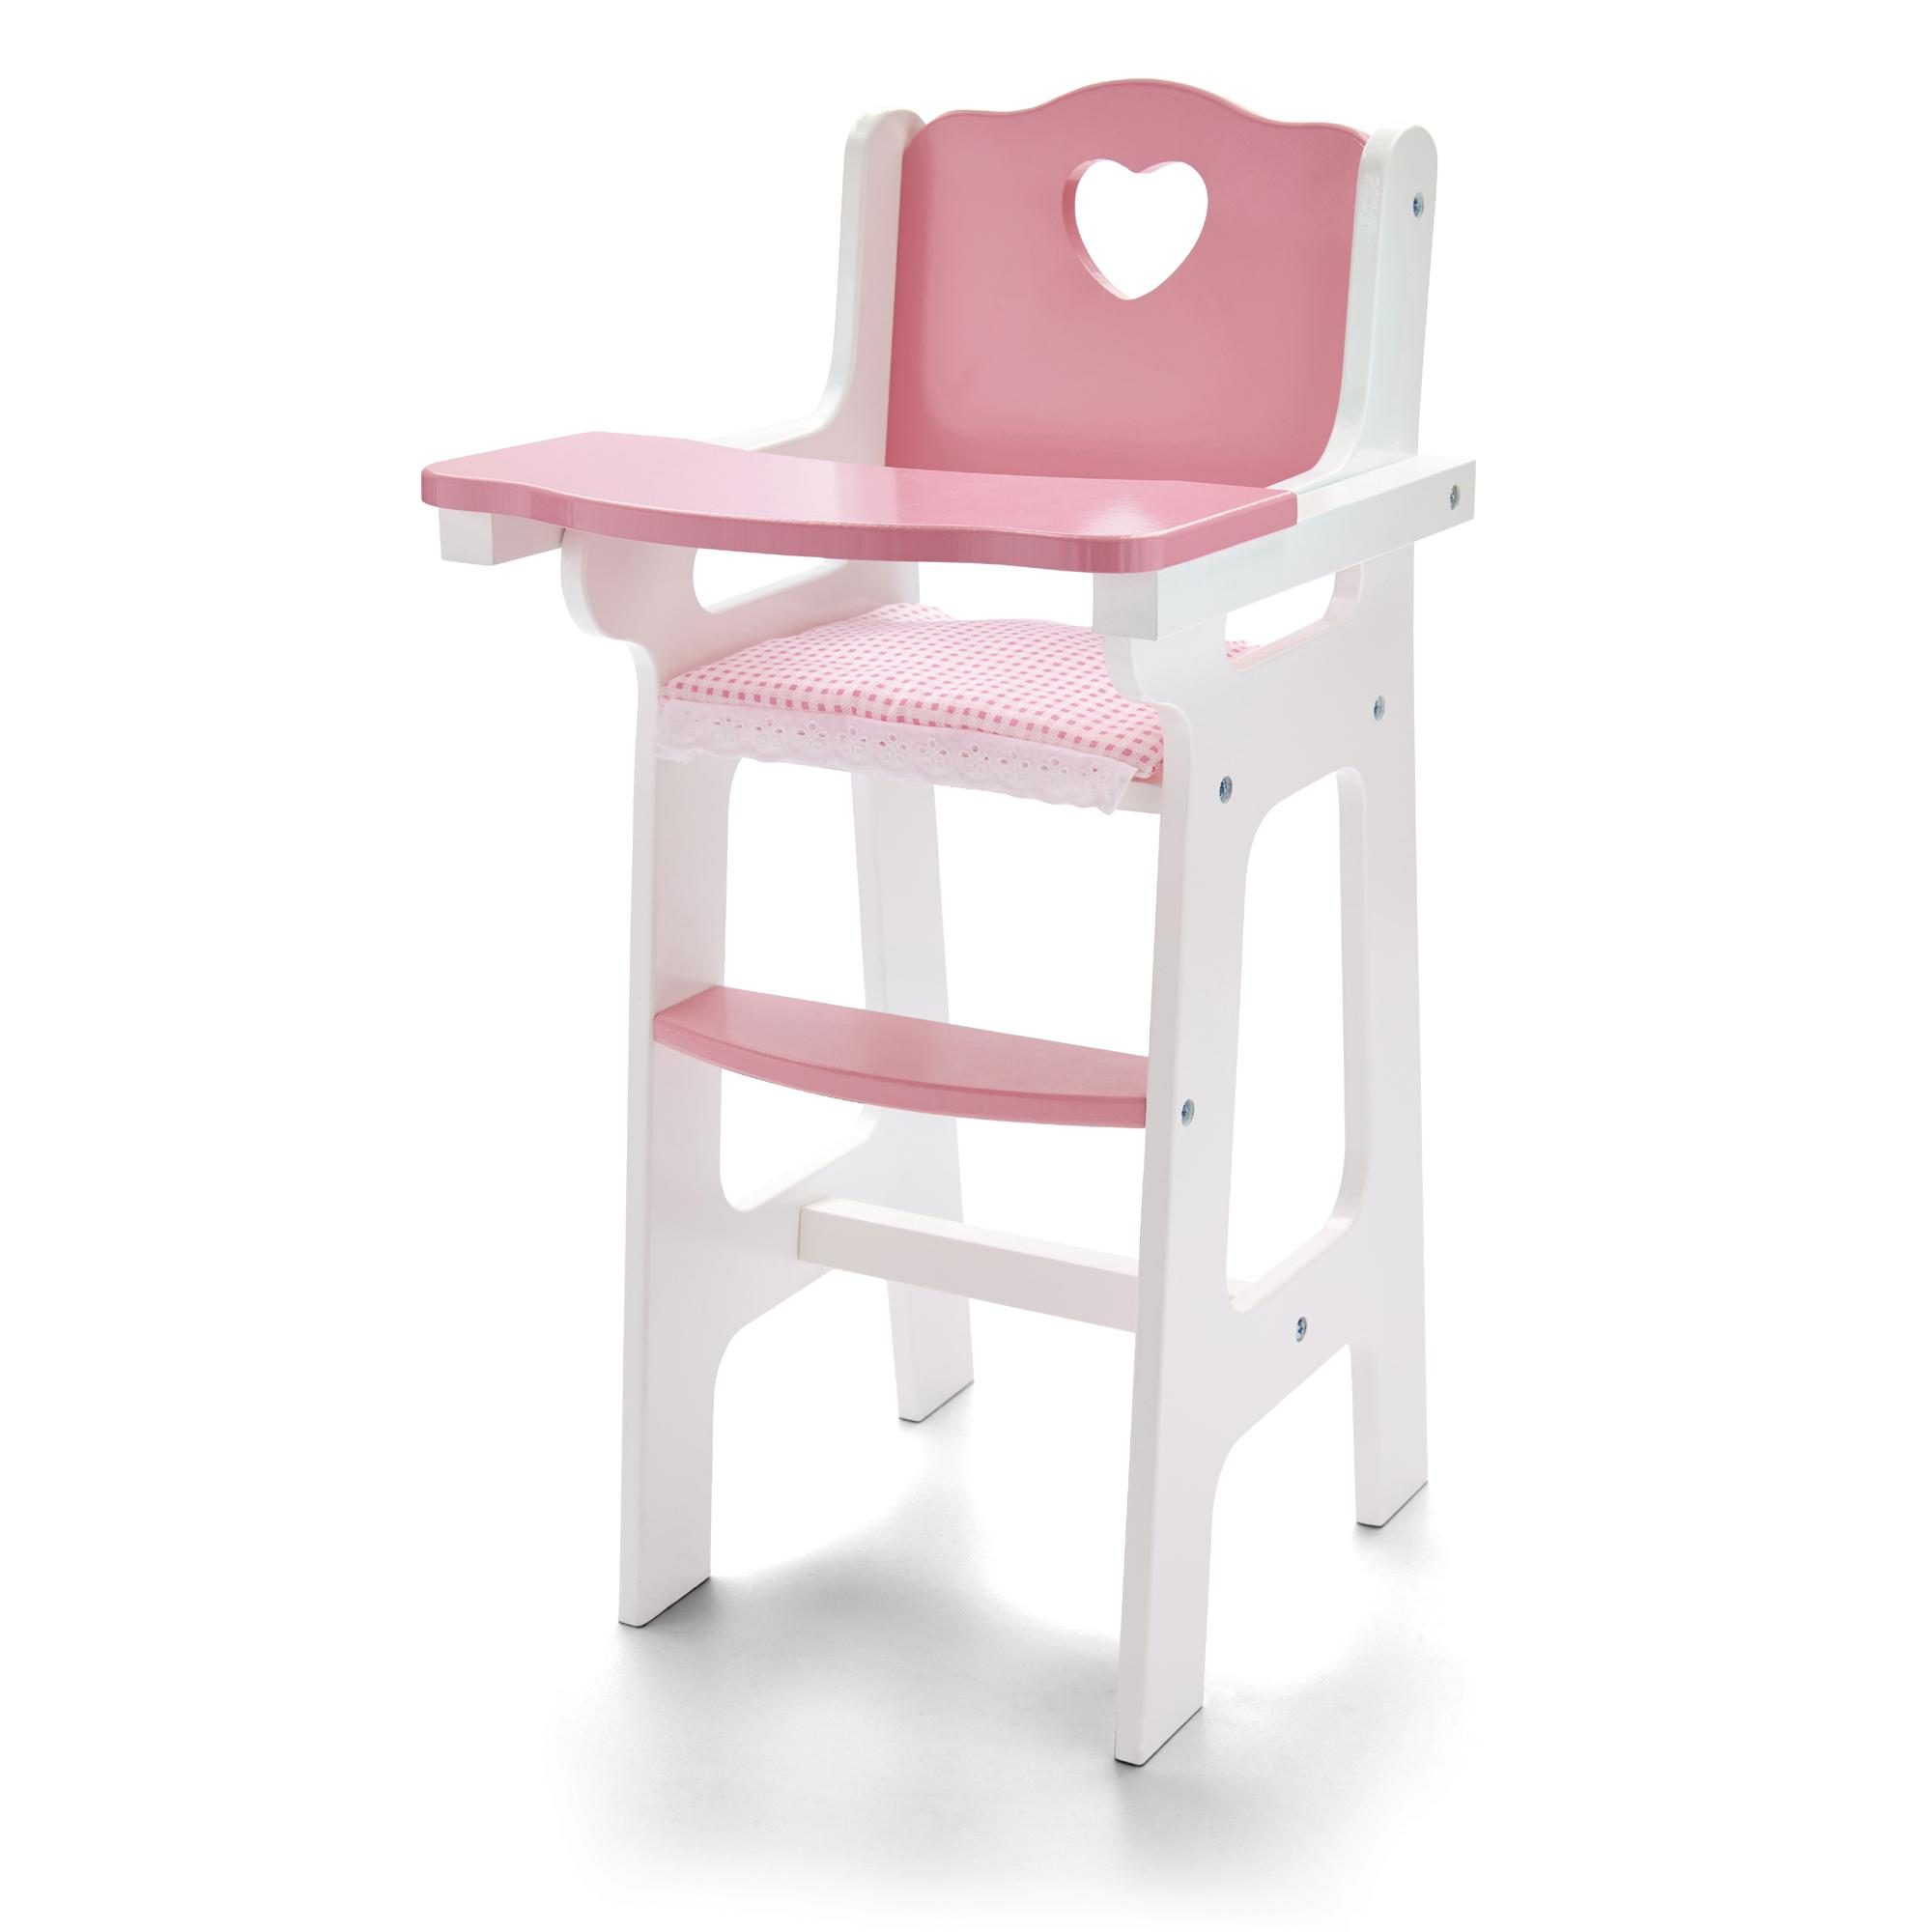 molly dolly my first dolls wooden high chair feeding doll wood toy